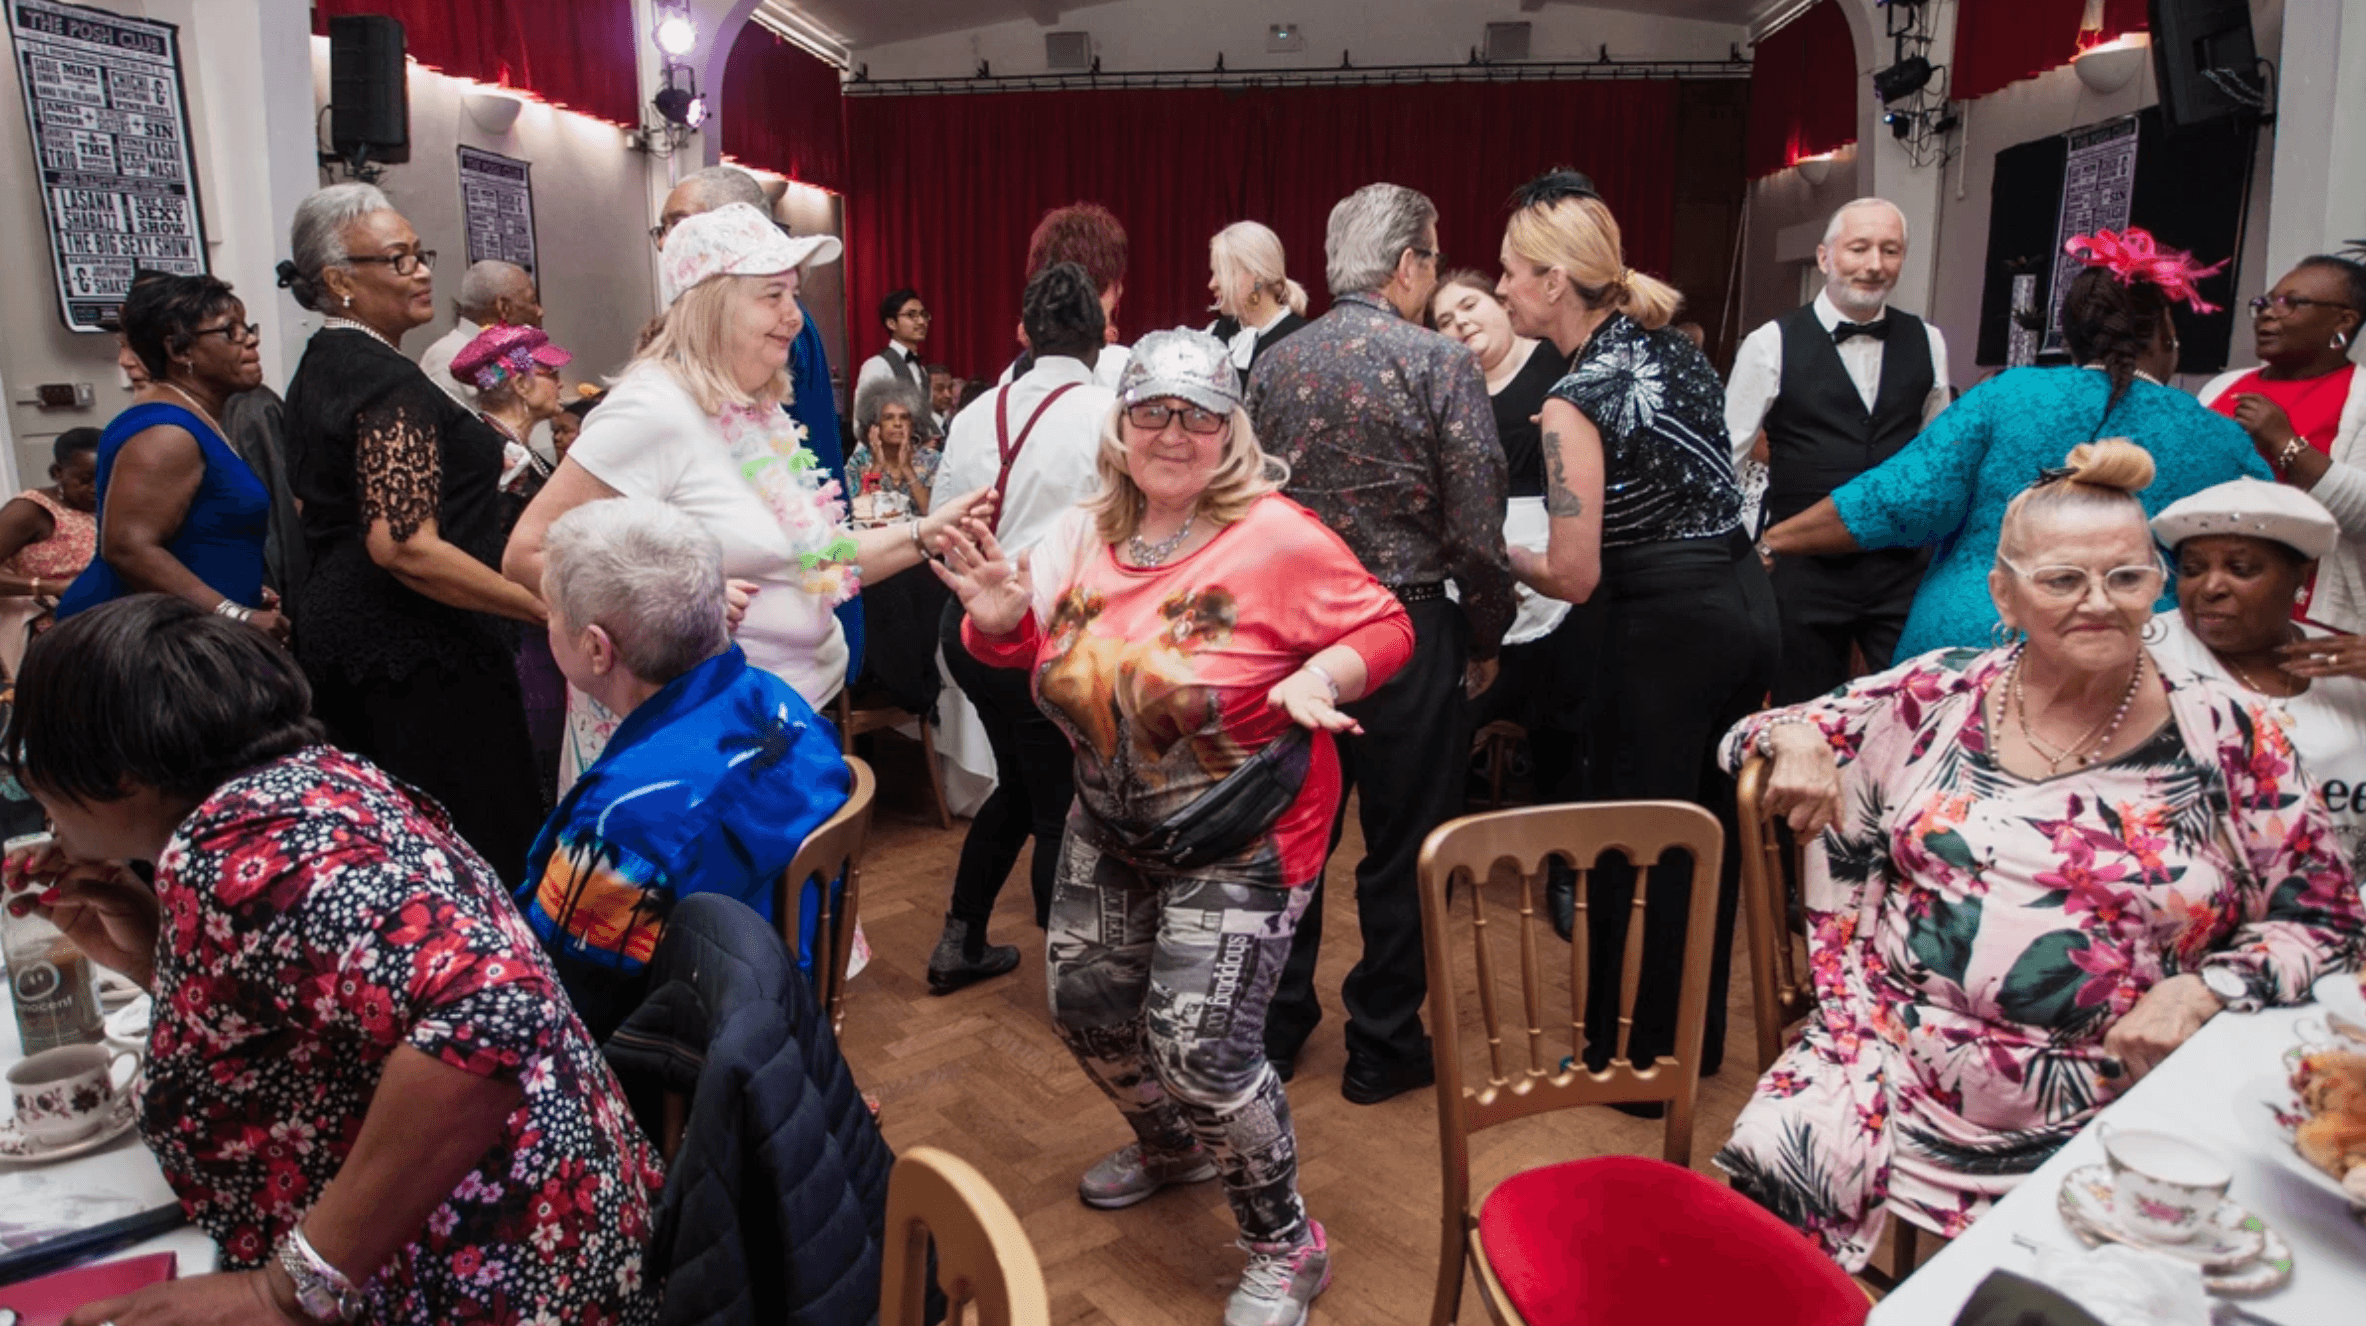 Elderly Club Skips Bingo for Tea Party Raves to Fight Loneliness